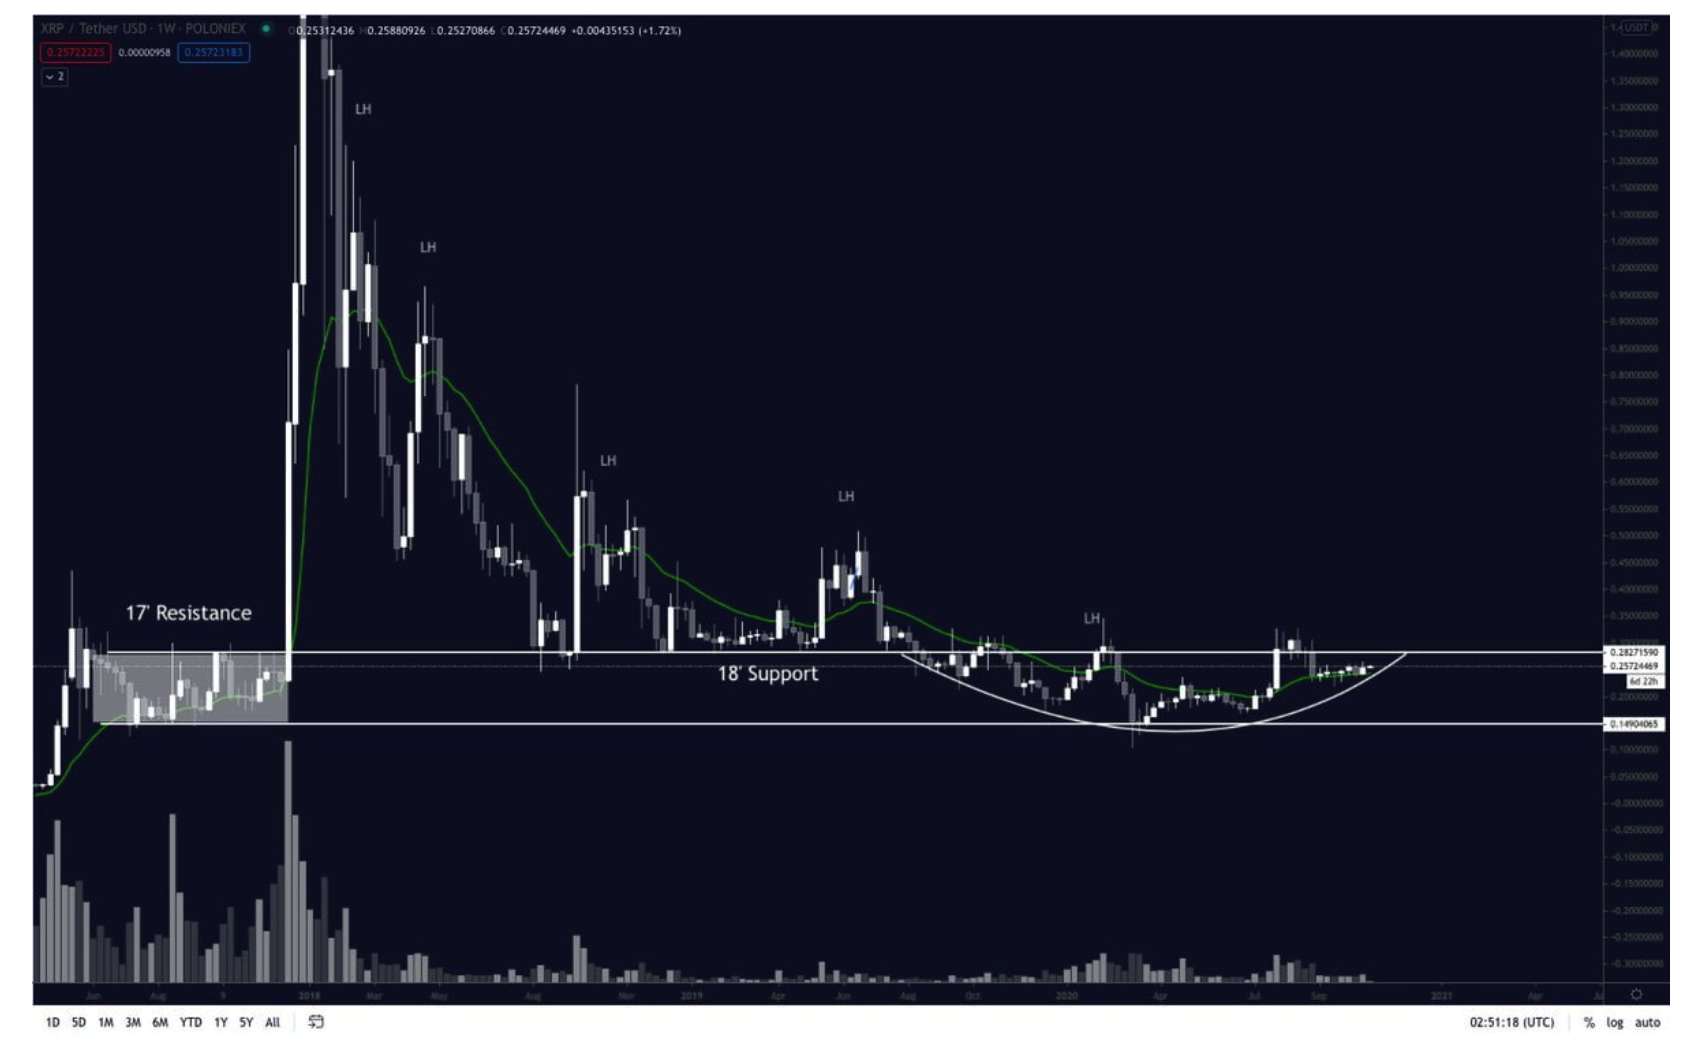 xrp-price-could-be-just-a-week-or-two-away-from-starting-its-next-bull-run